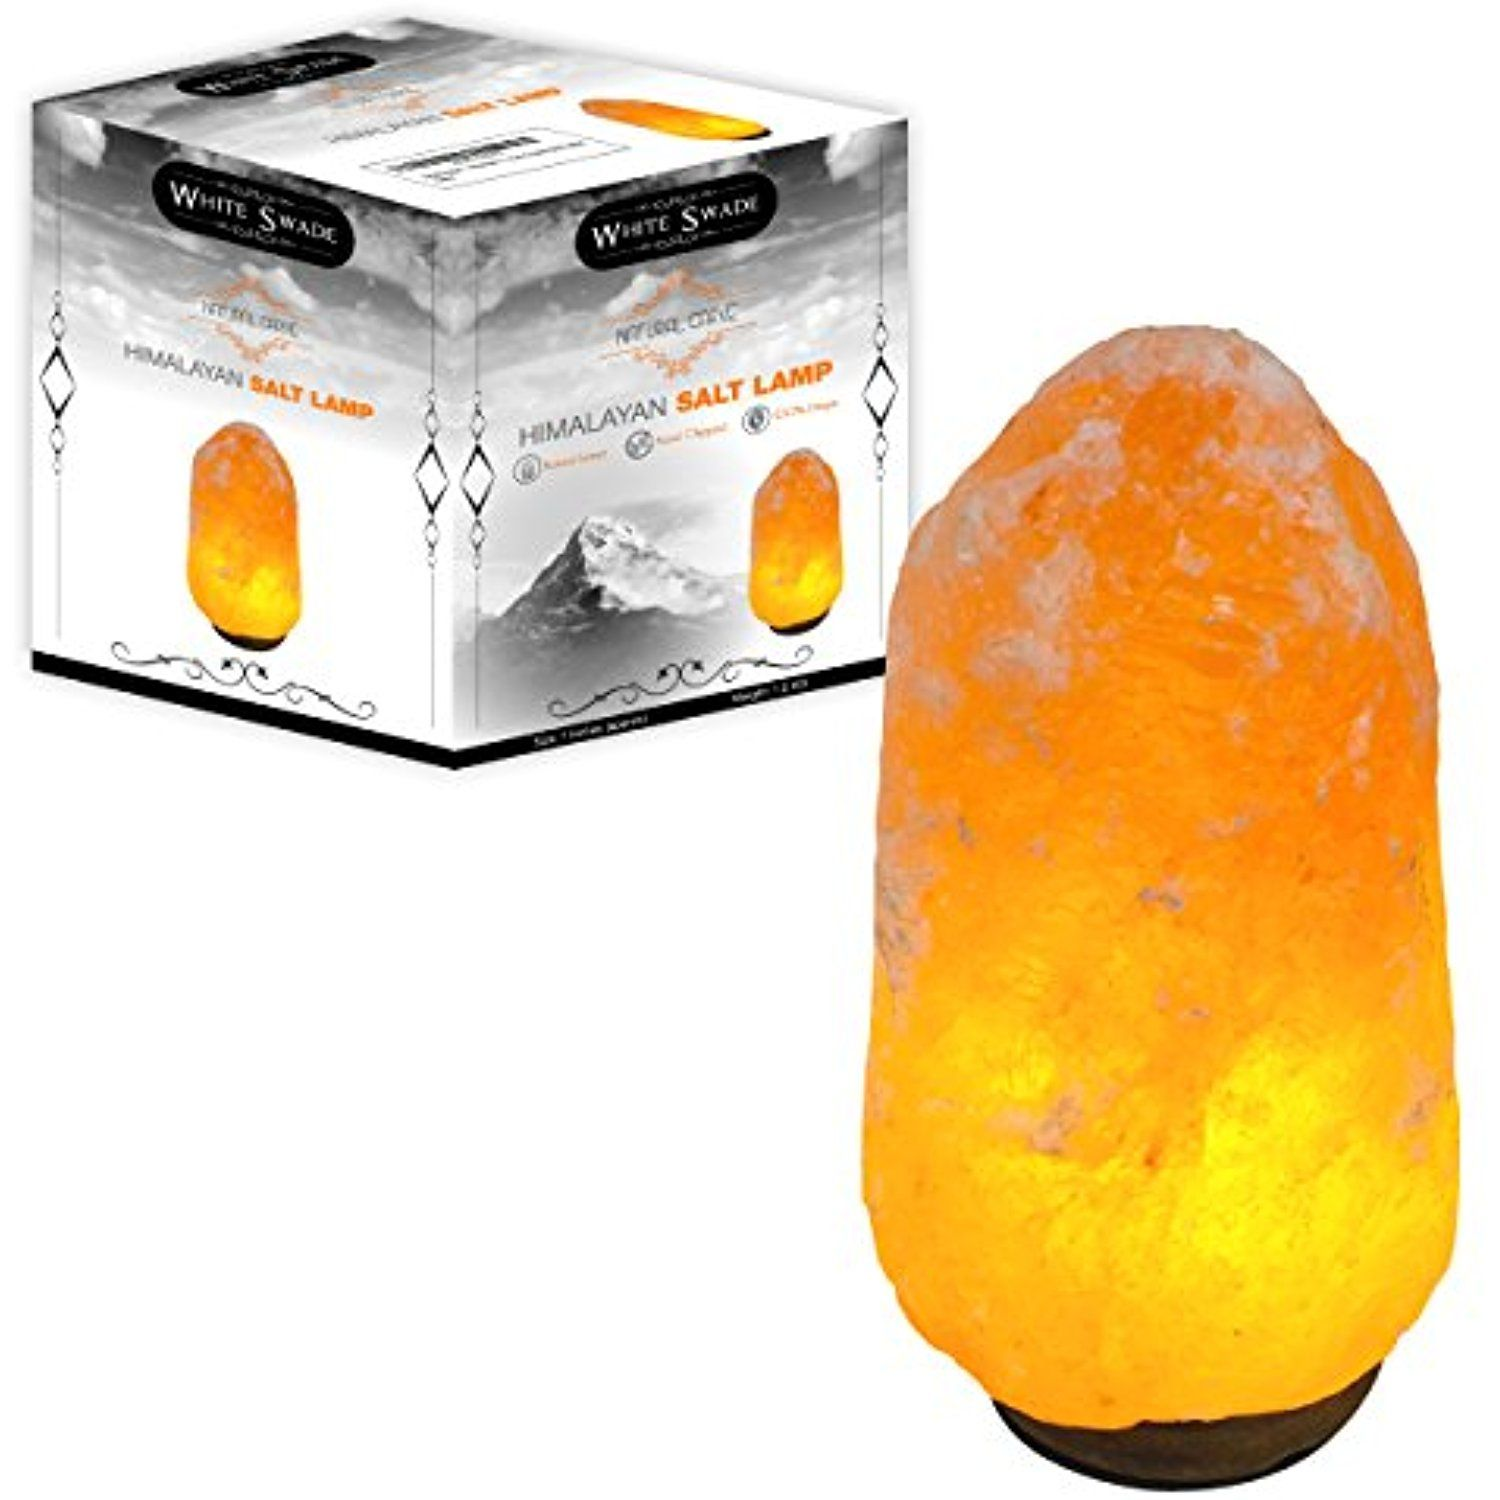 "Genuine Himalayan Salt Lamp Simple Whiteswade 7"" Himalayan Salt Lamp With Dimmer Switch Genuine Neem Inspiration Design"